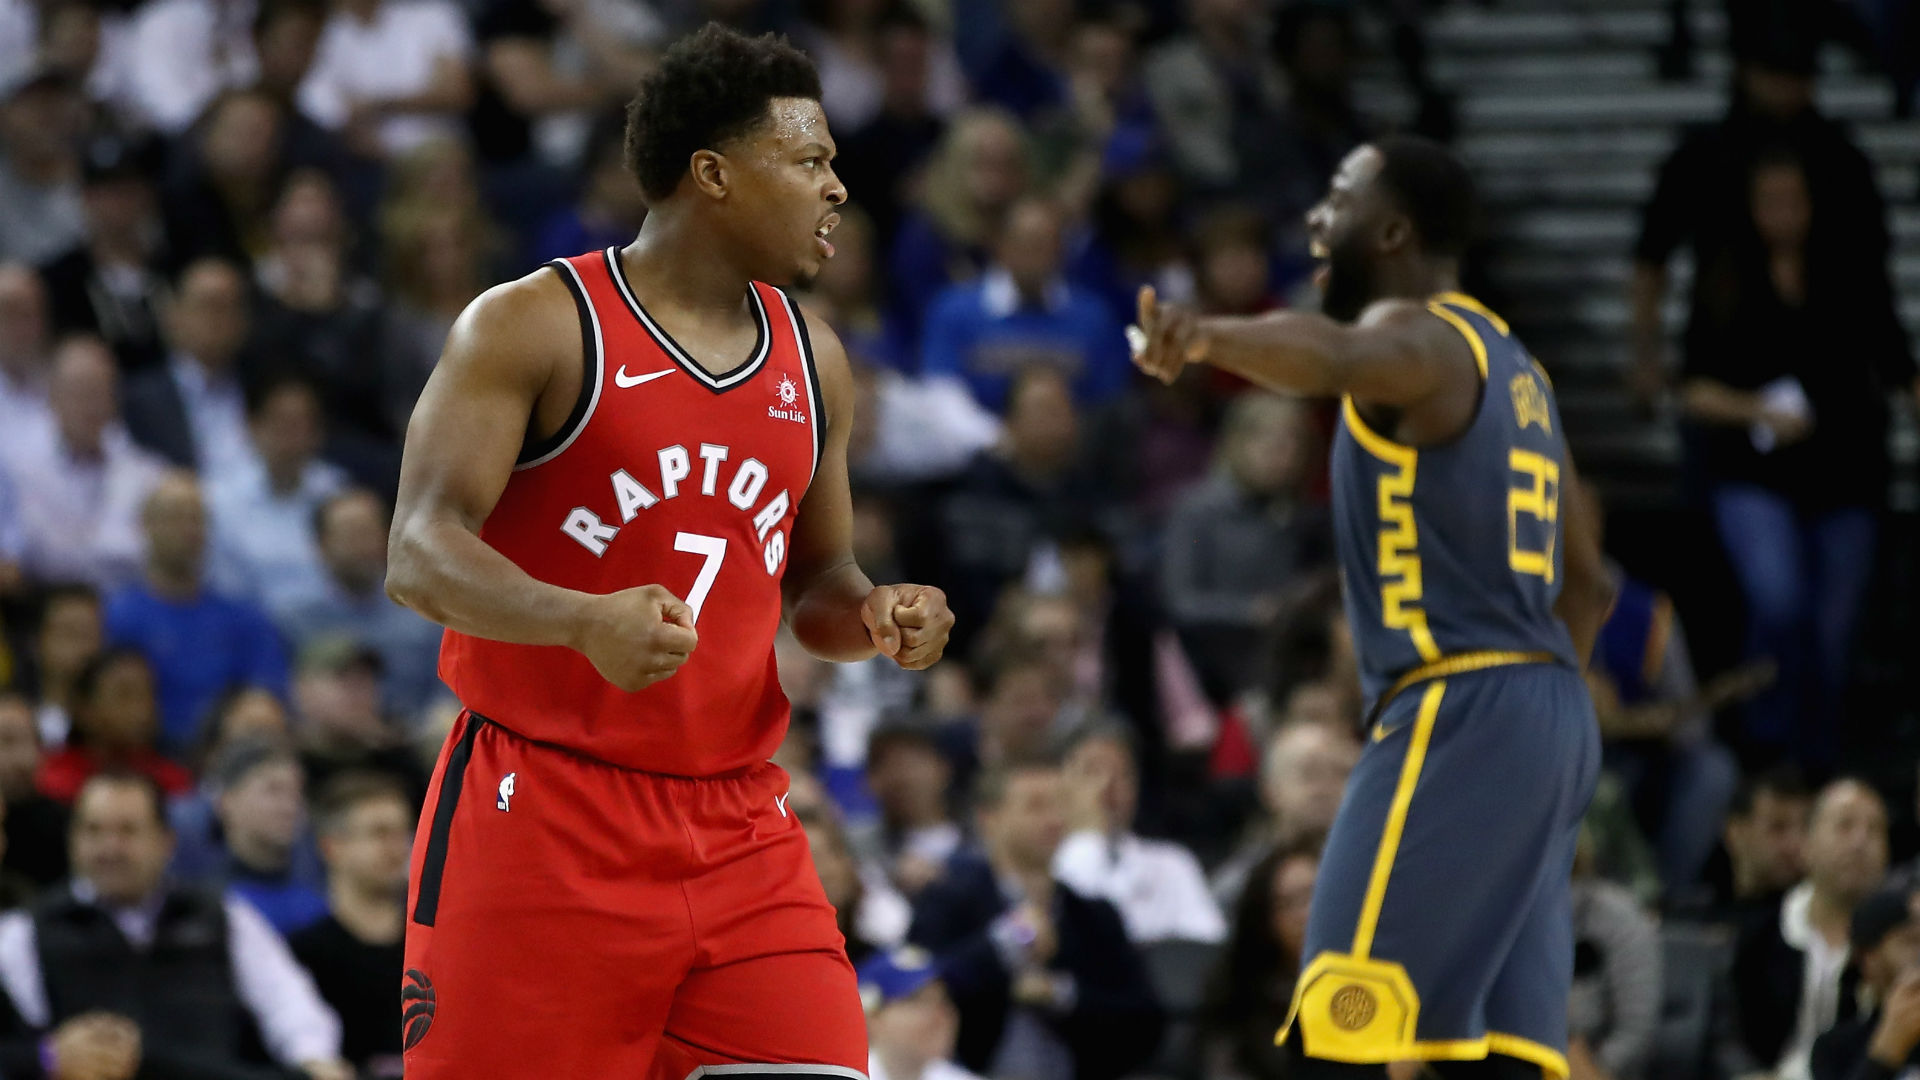 Kyle Lowry scored 23 points as the Toronto Raptors took their record to 23-7 with a clean sweep of the NBA champions.